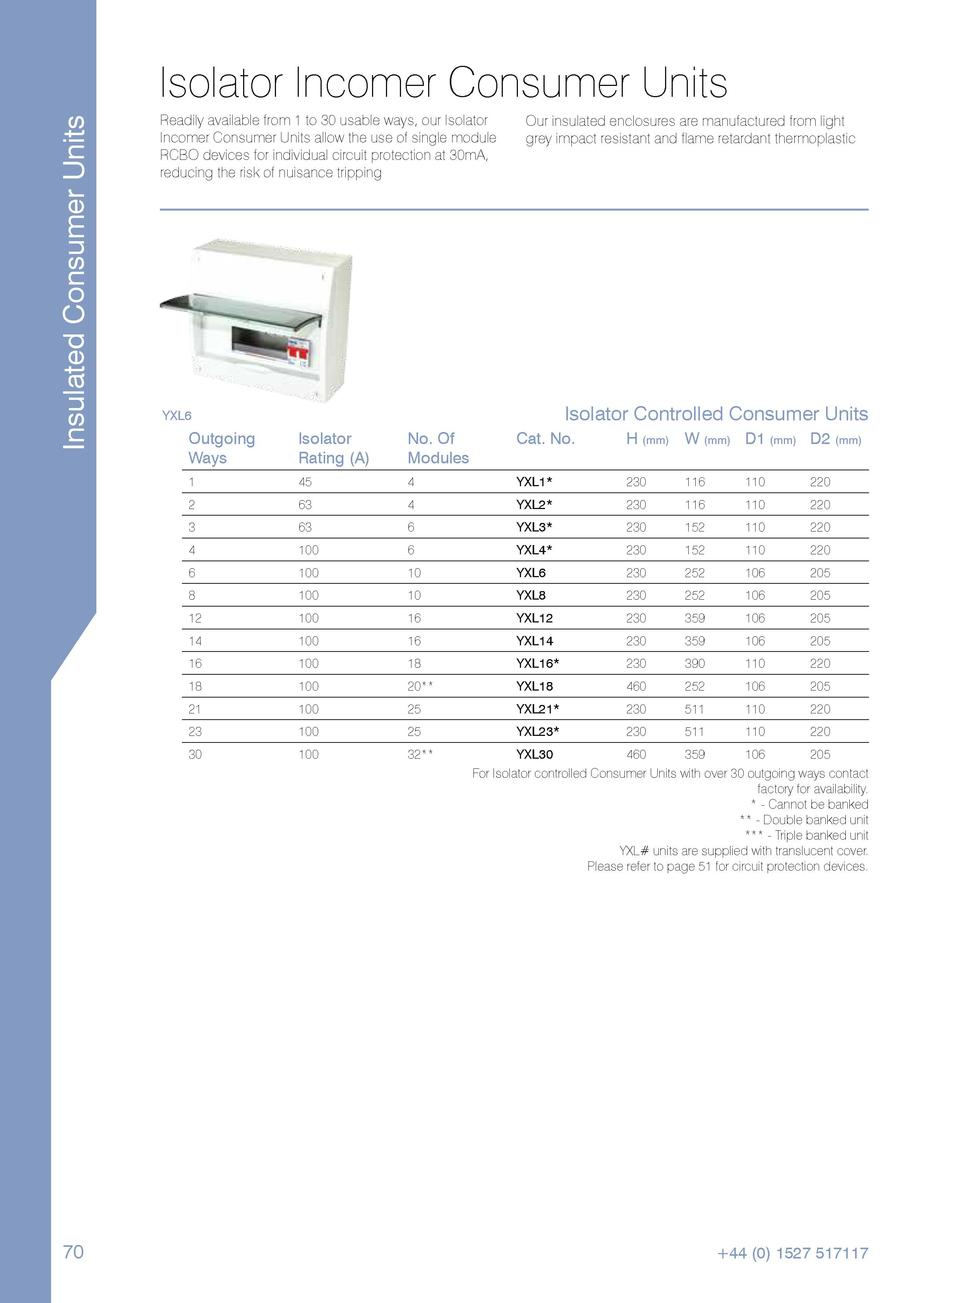 Insulated Consumer Units  Isolator Incomer Consumer Units Readily available from 1 to 30 usable ways, our Isolator Incomer...